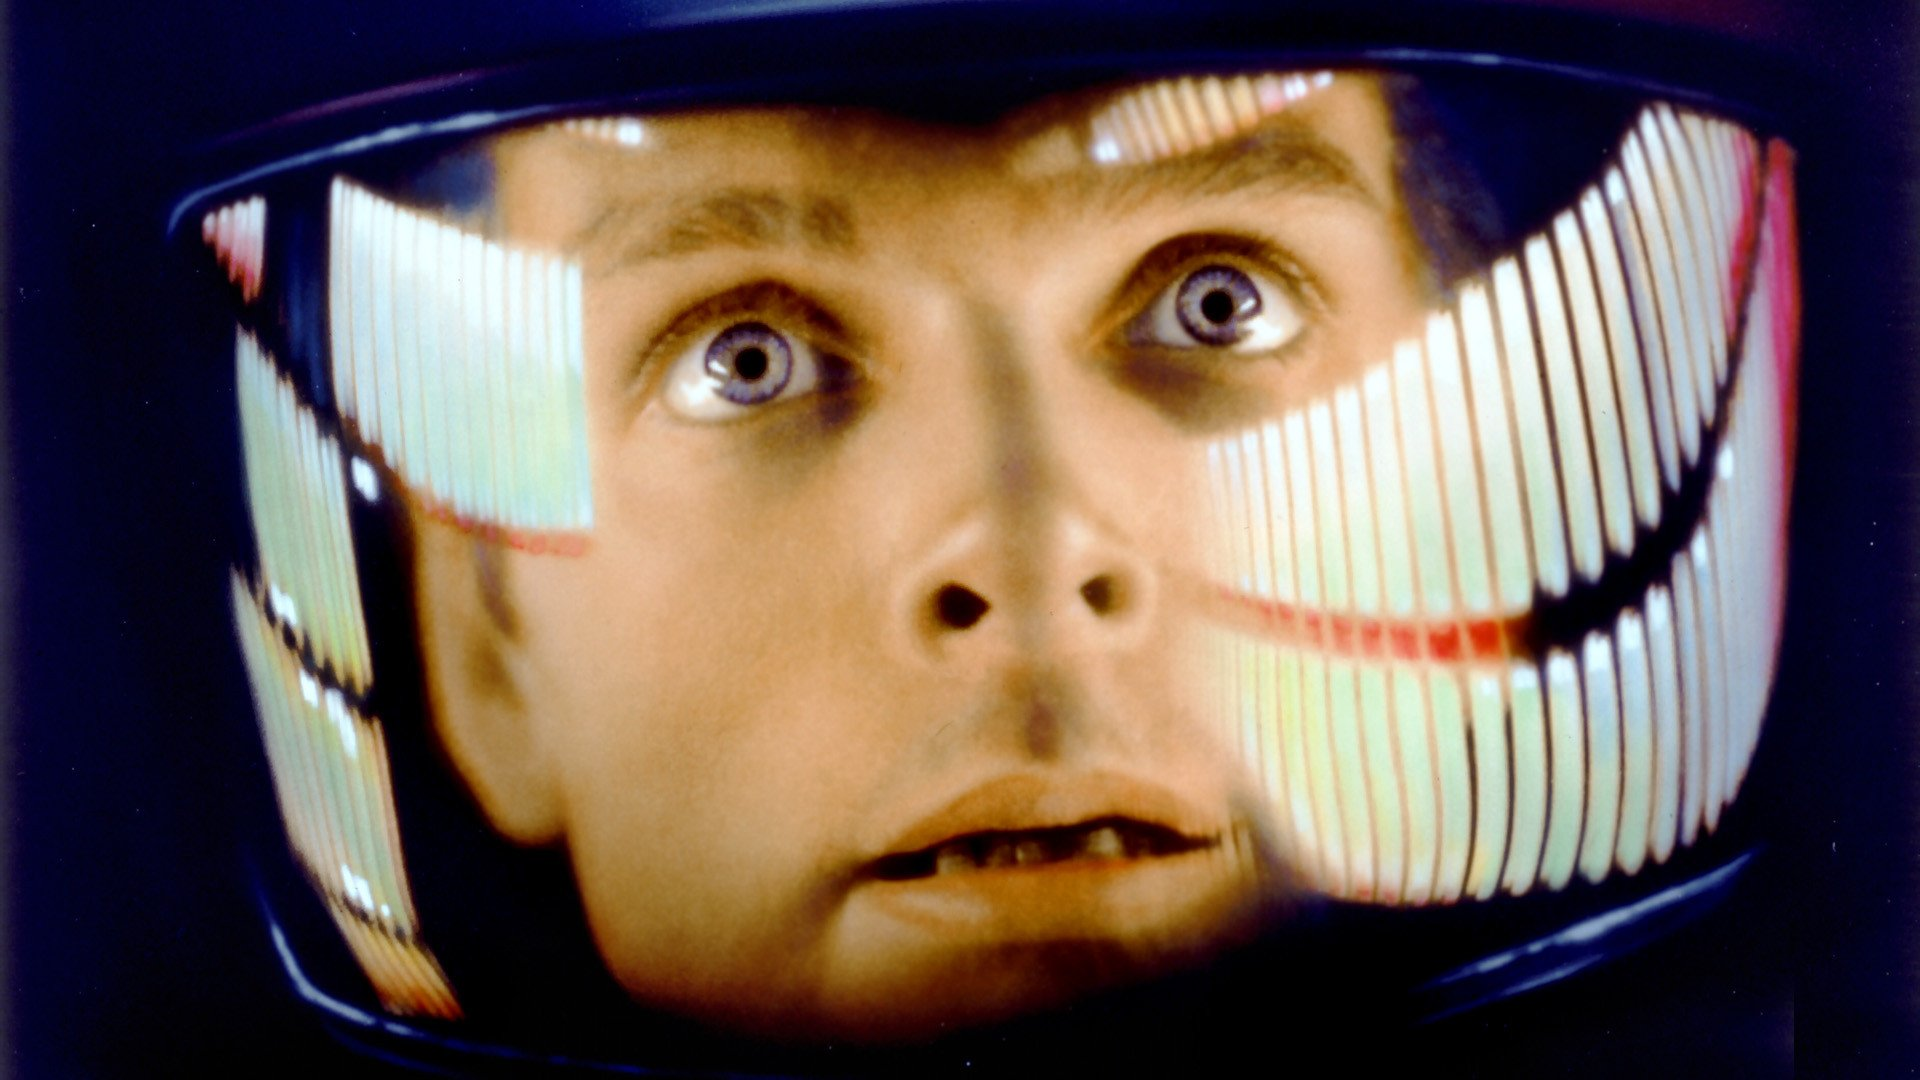 Take 2: 2001: A Space Odyssey feature image